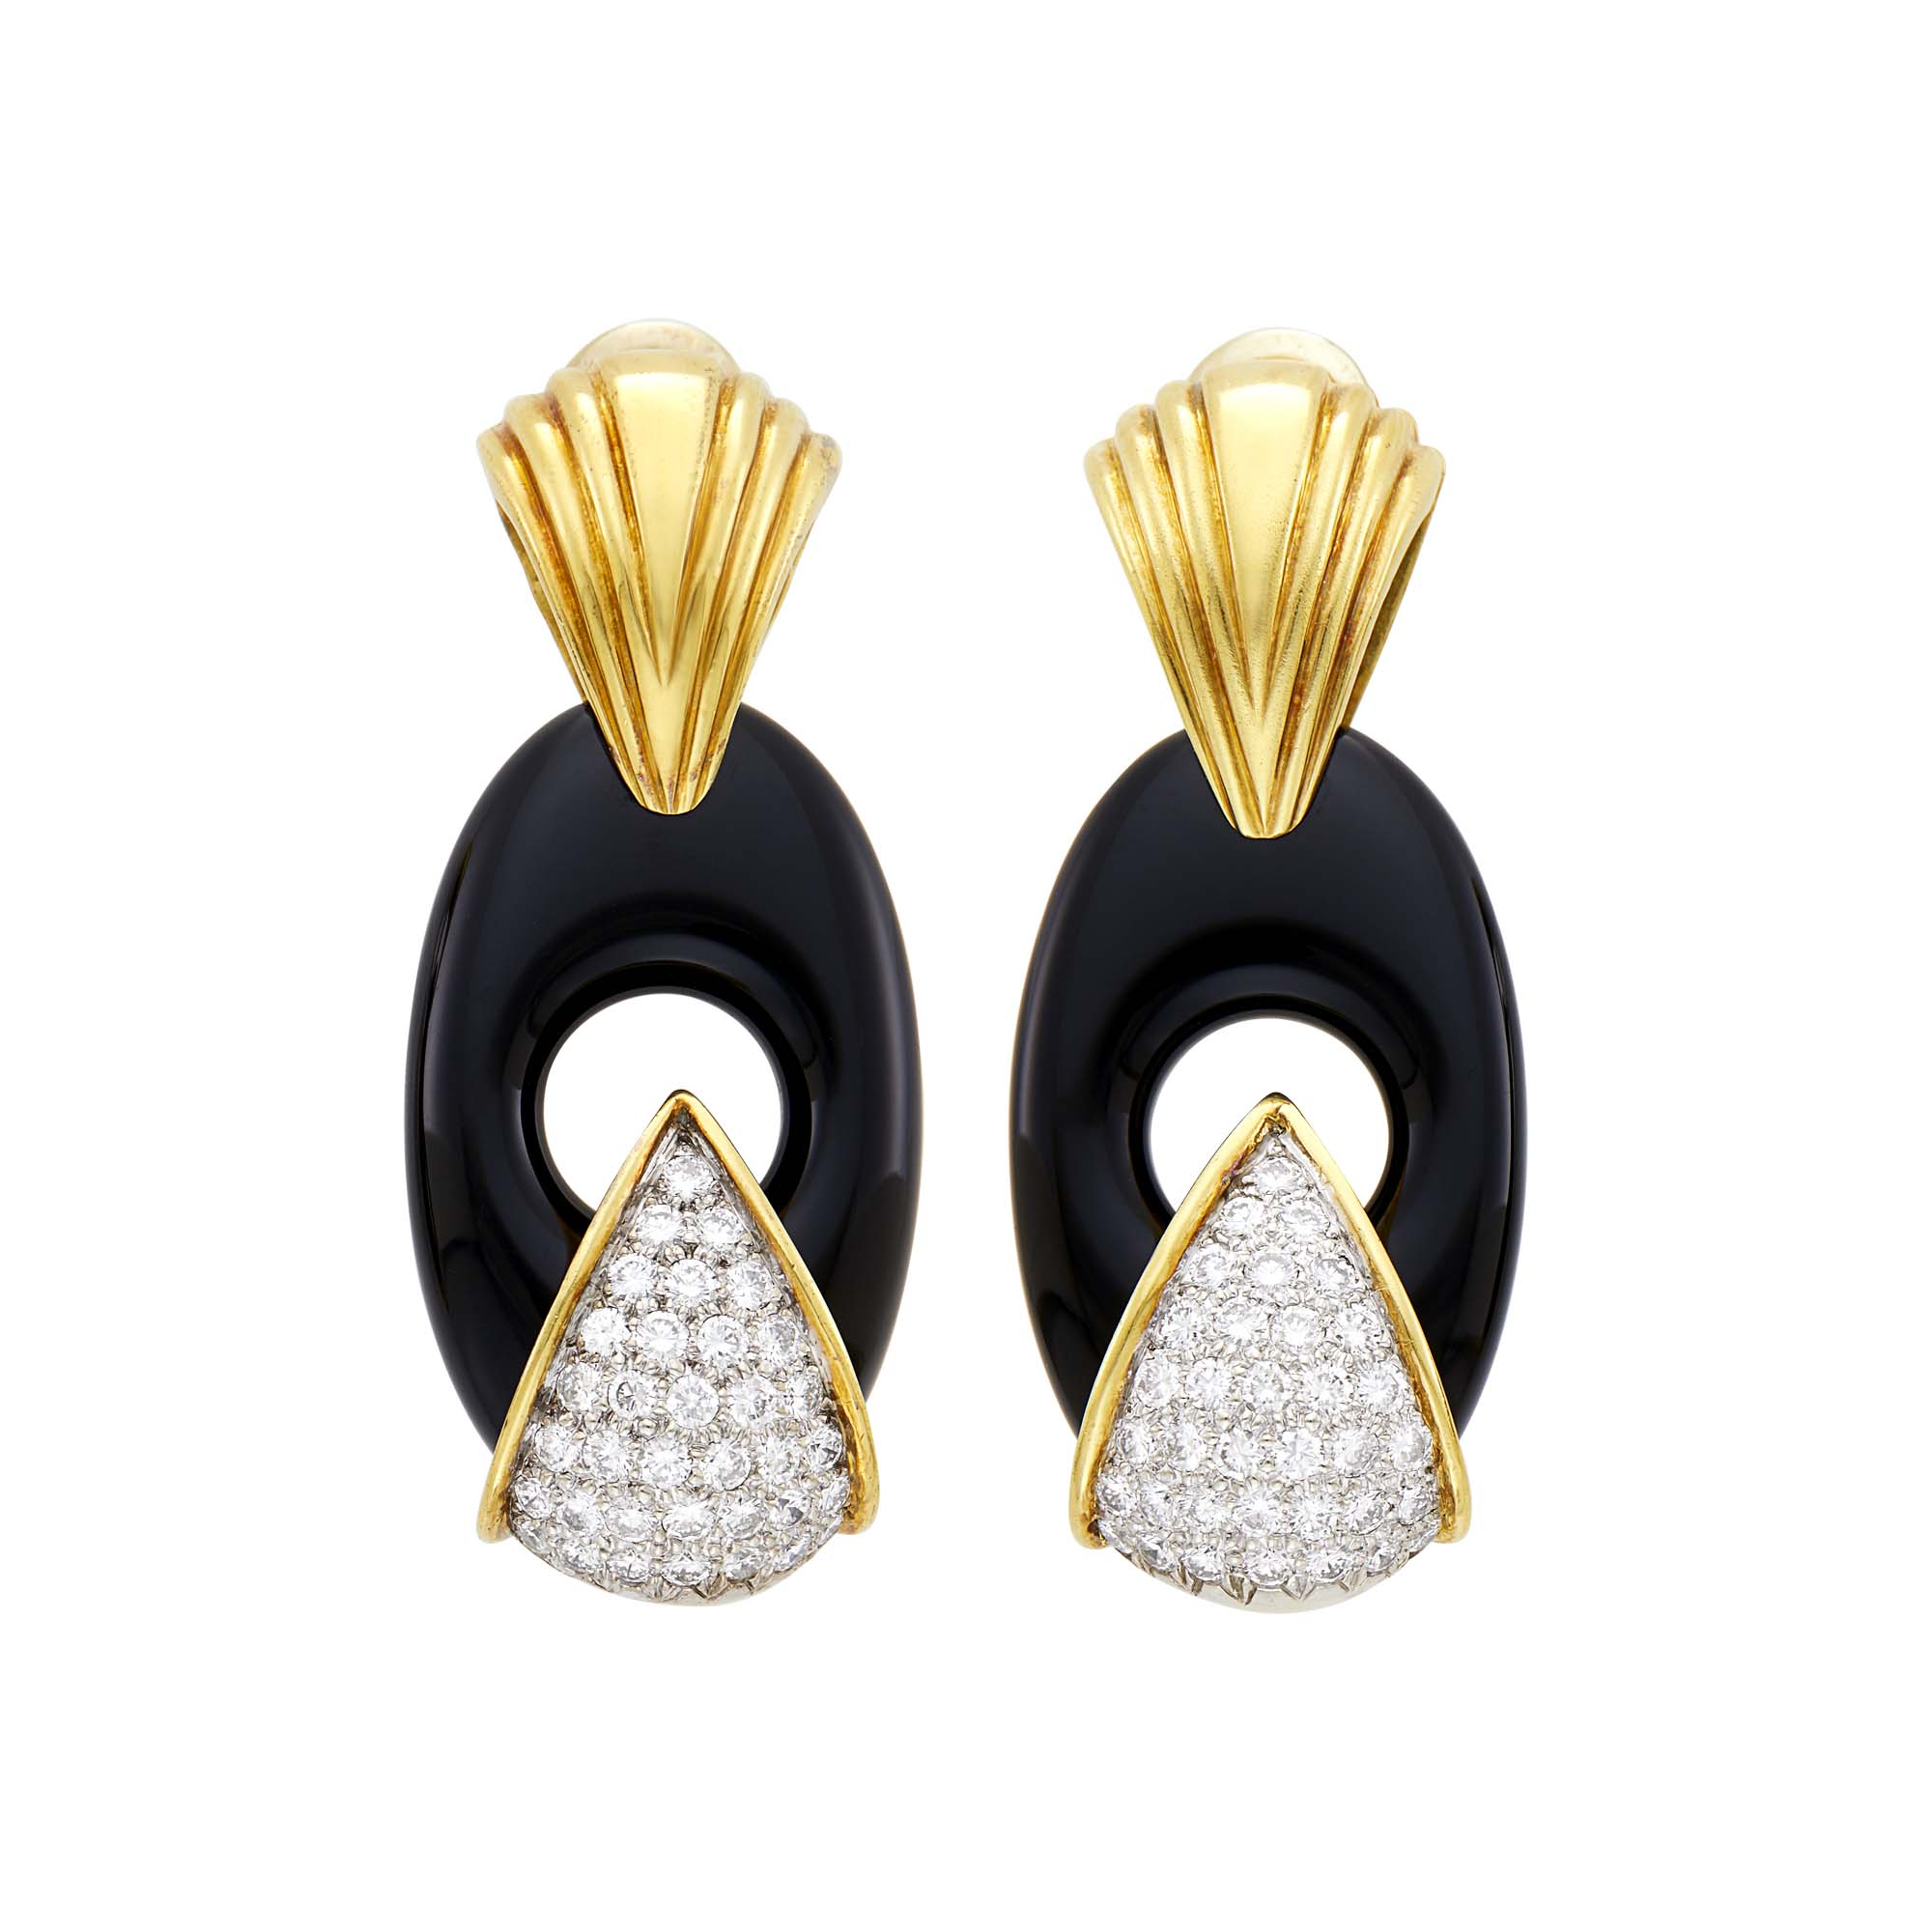 Lot image - Spritzer and Fuhrmann Pair of Two-Color Gold, Black Onyx and Diamond Earclips